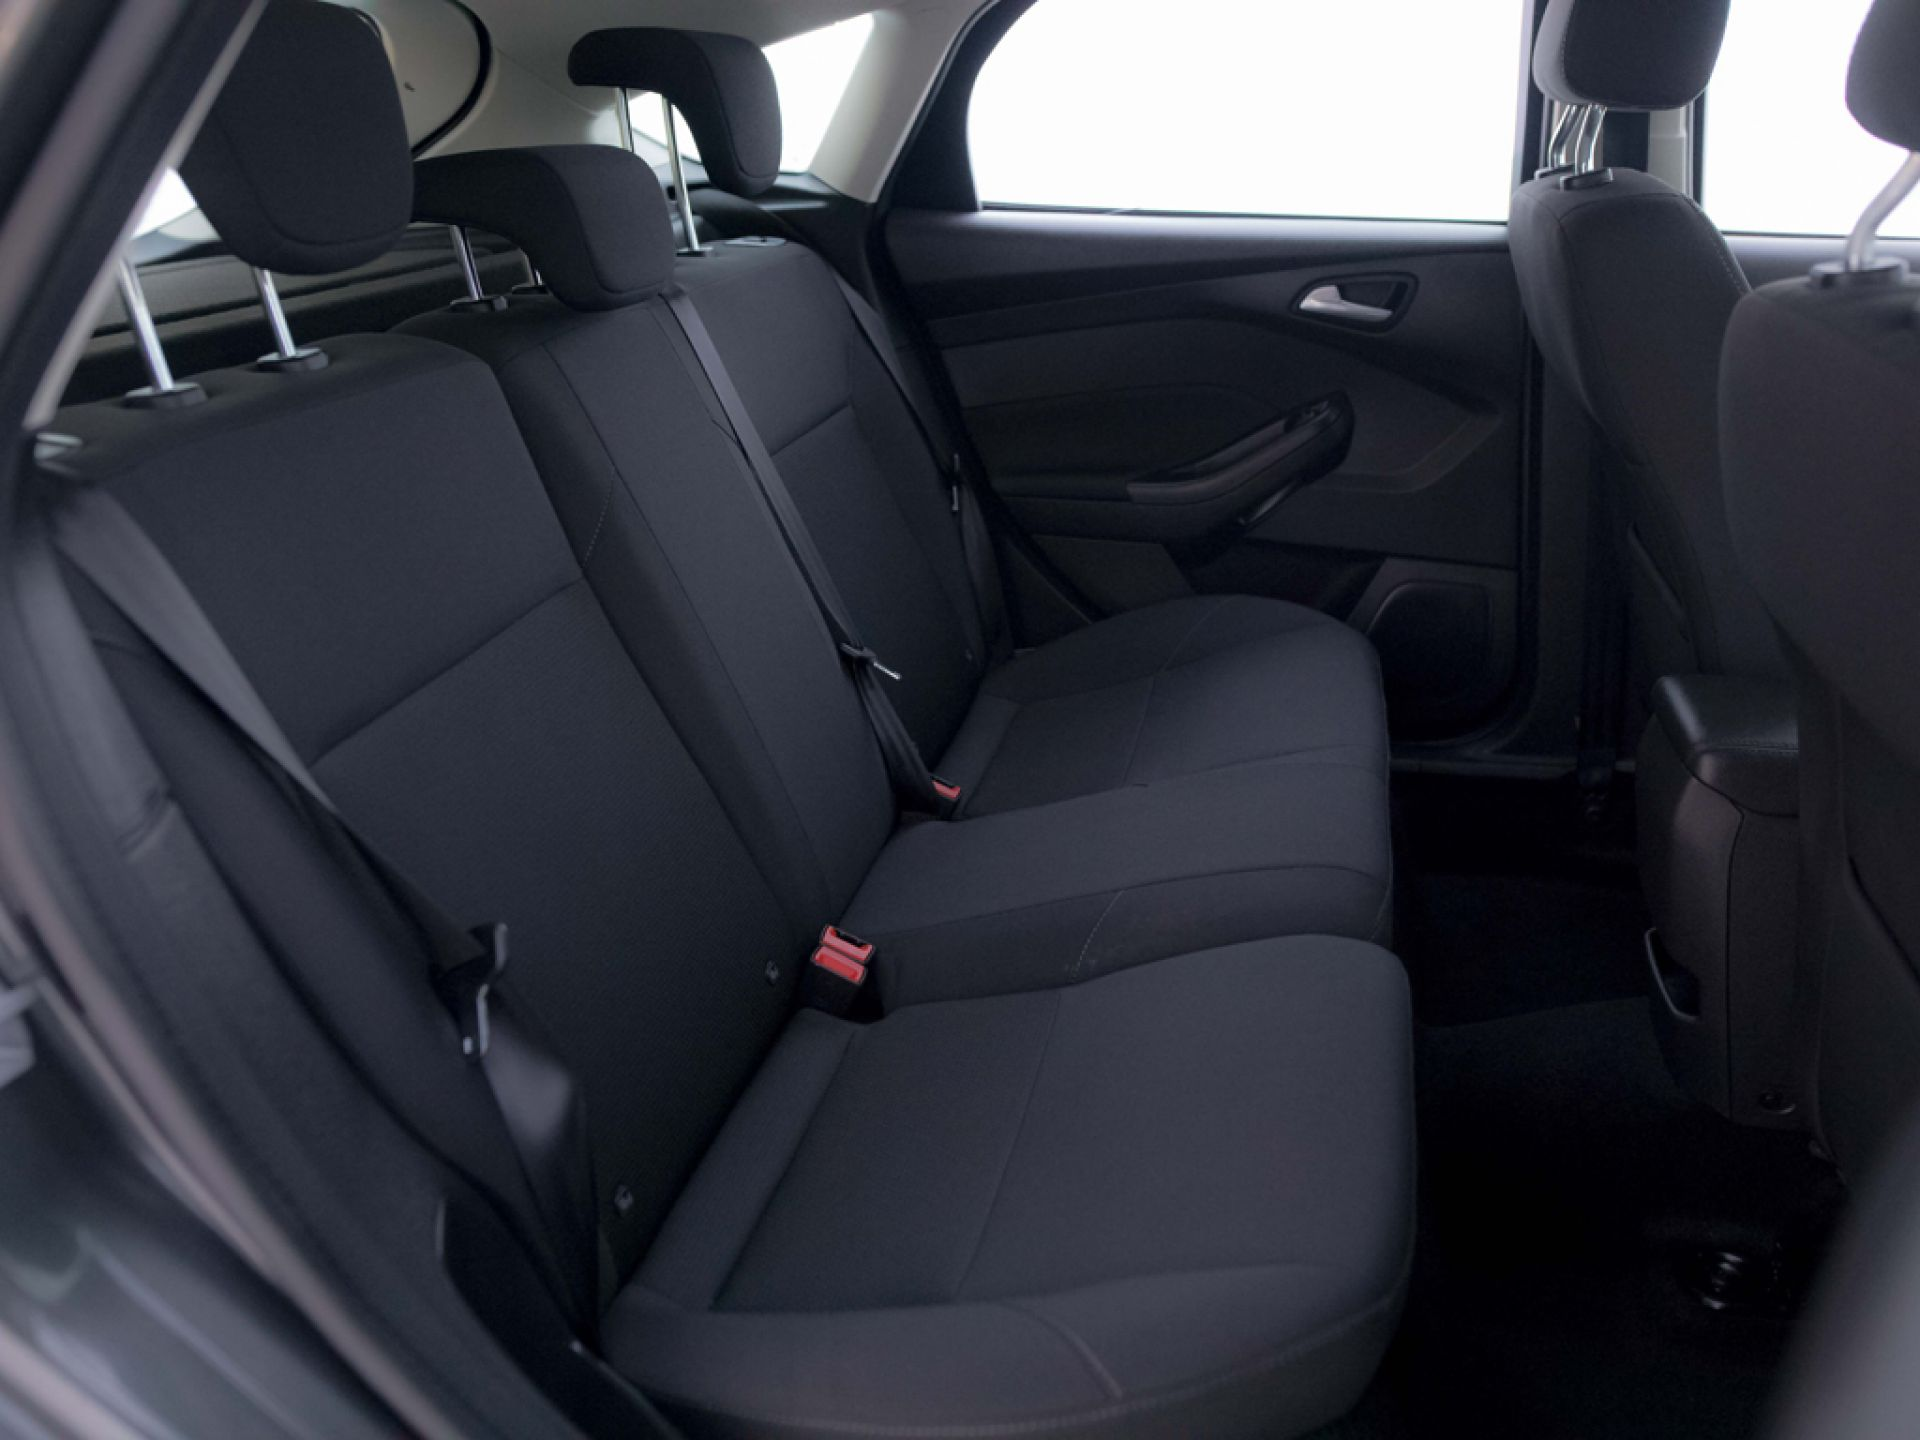 Ford Focus 1.5 TDCi Business